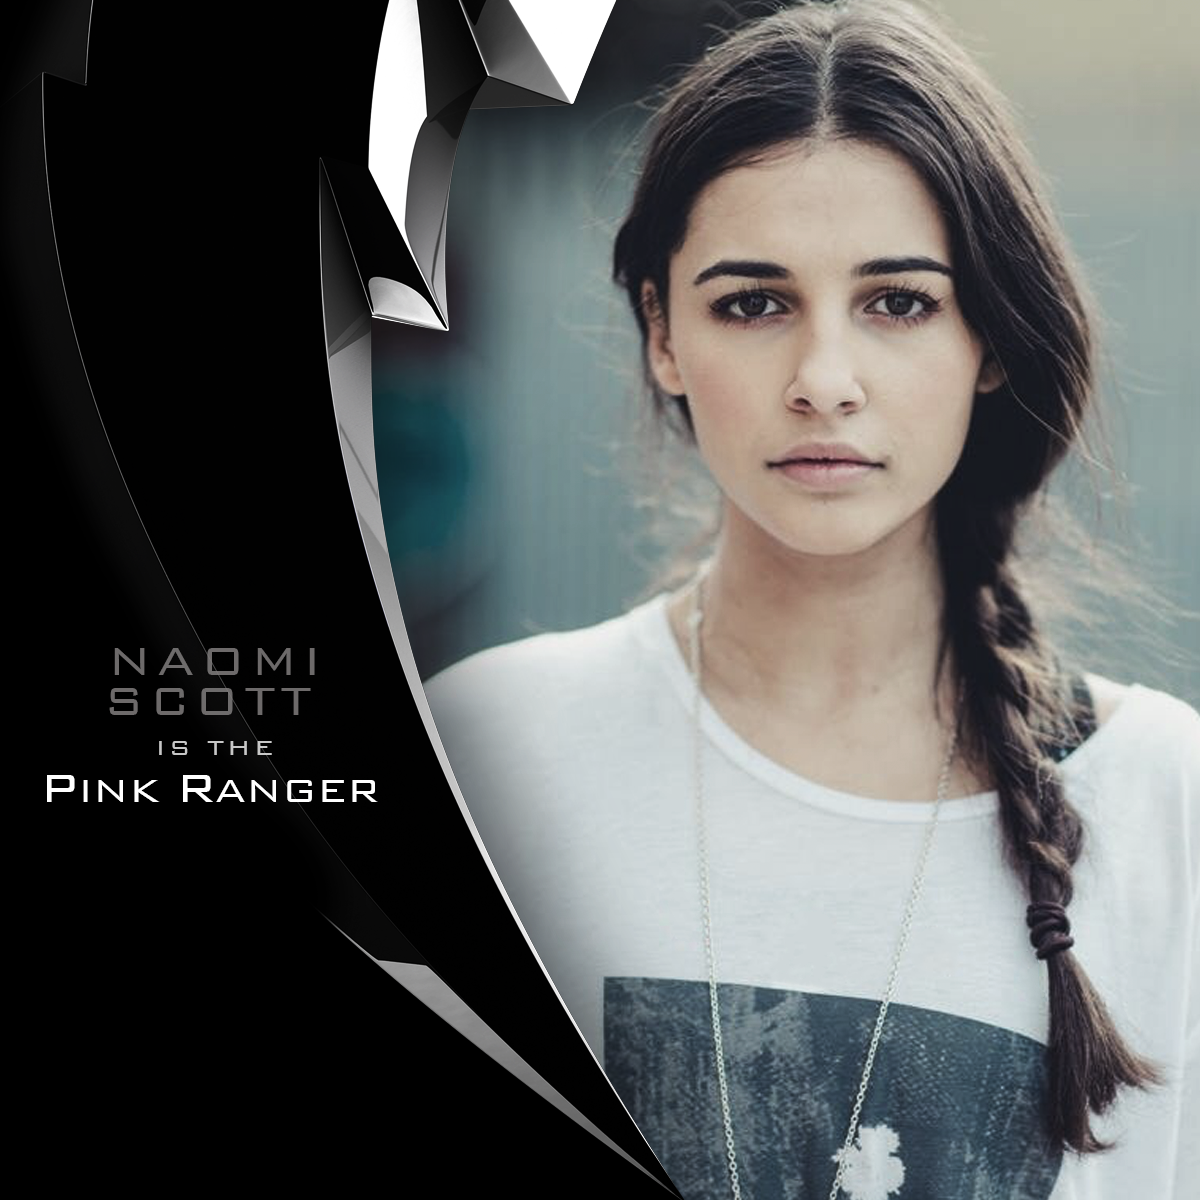 BIG #PowerRangers movie news - @naomiscott is playing the Pink Ranger! Follow @PowerRangersMovie on Instagram! http://t.co/UpO3cXO2pr